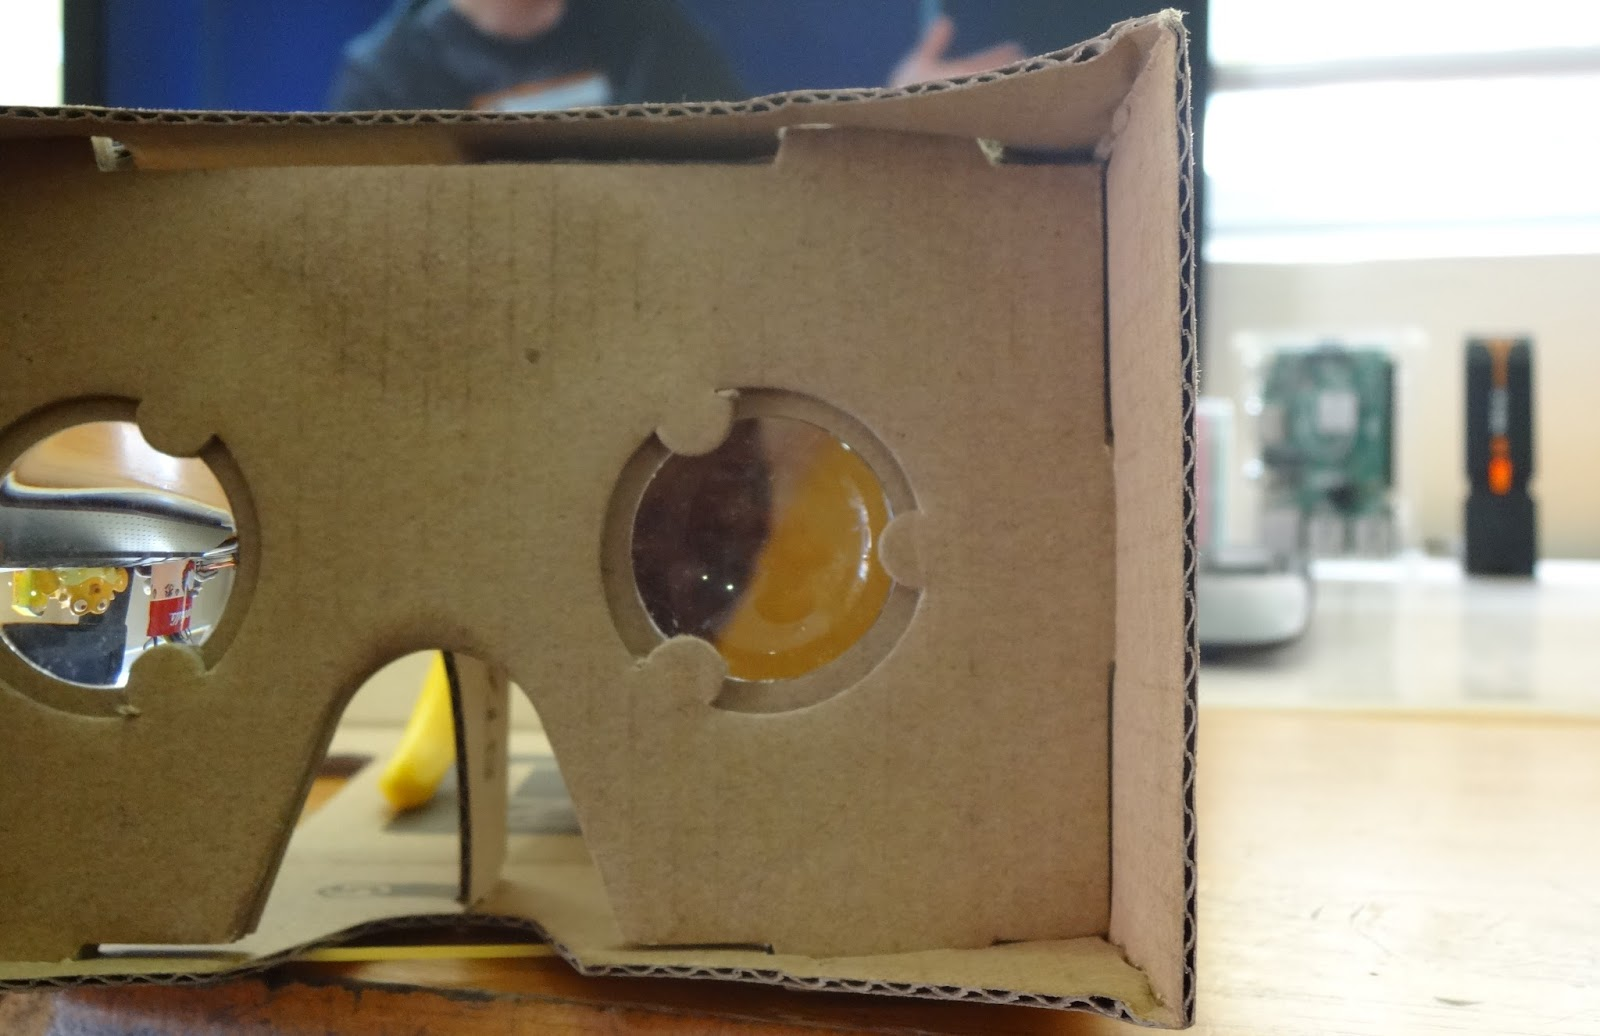 google-cardboard-headset-convex-lens-android-malaysia